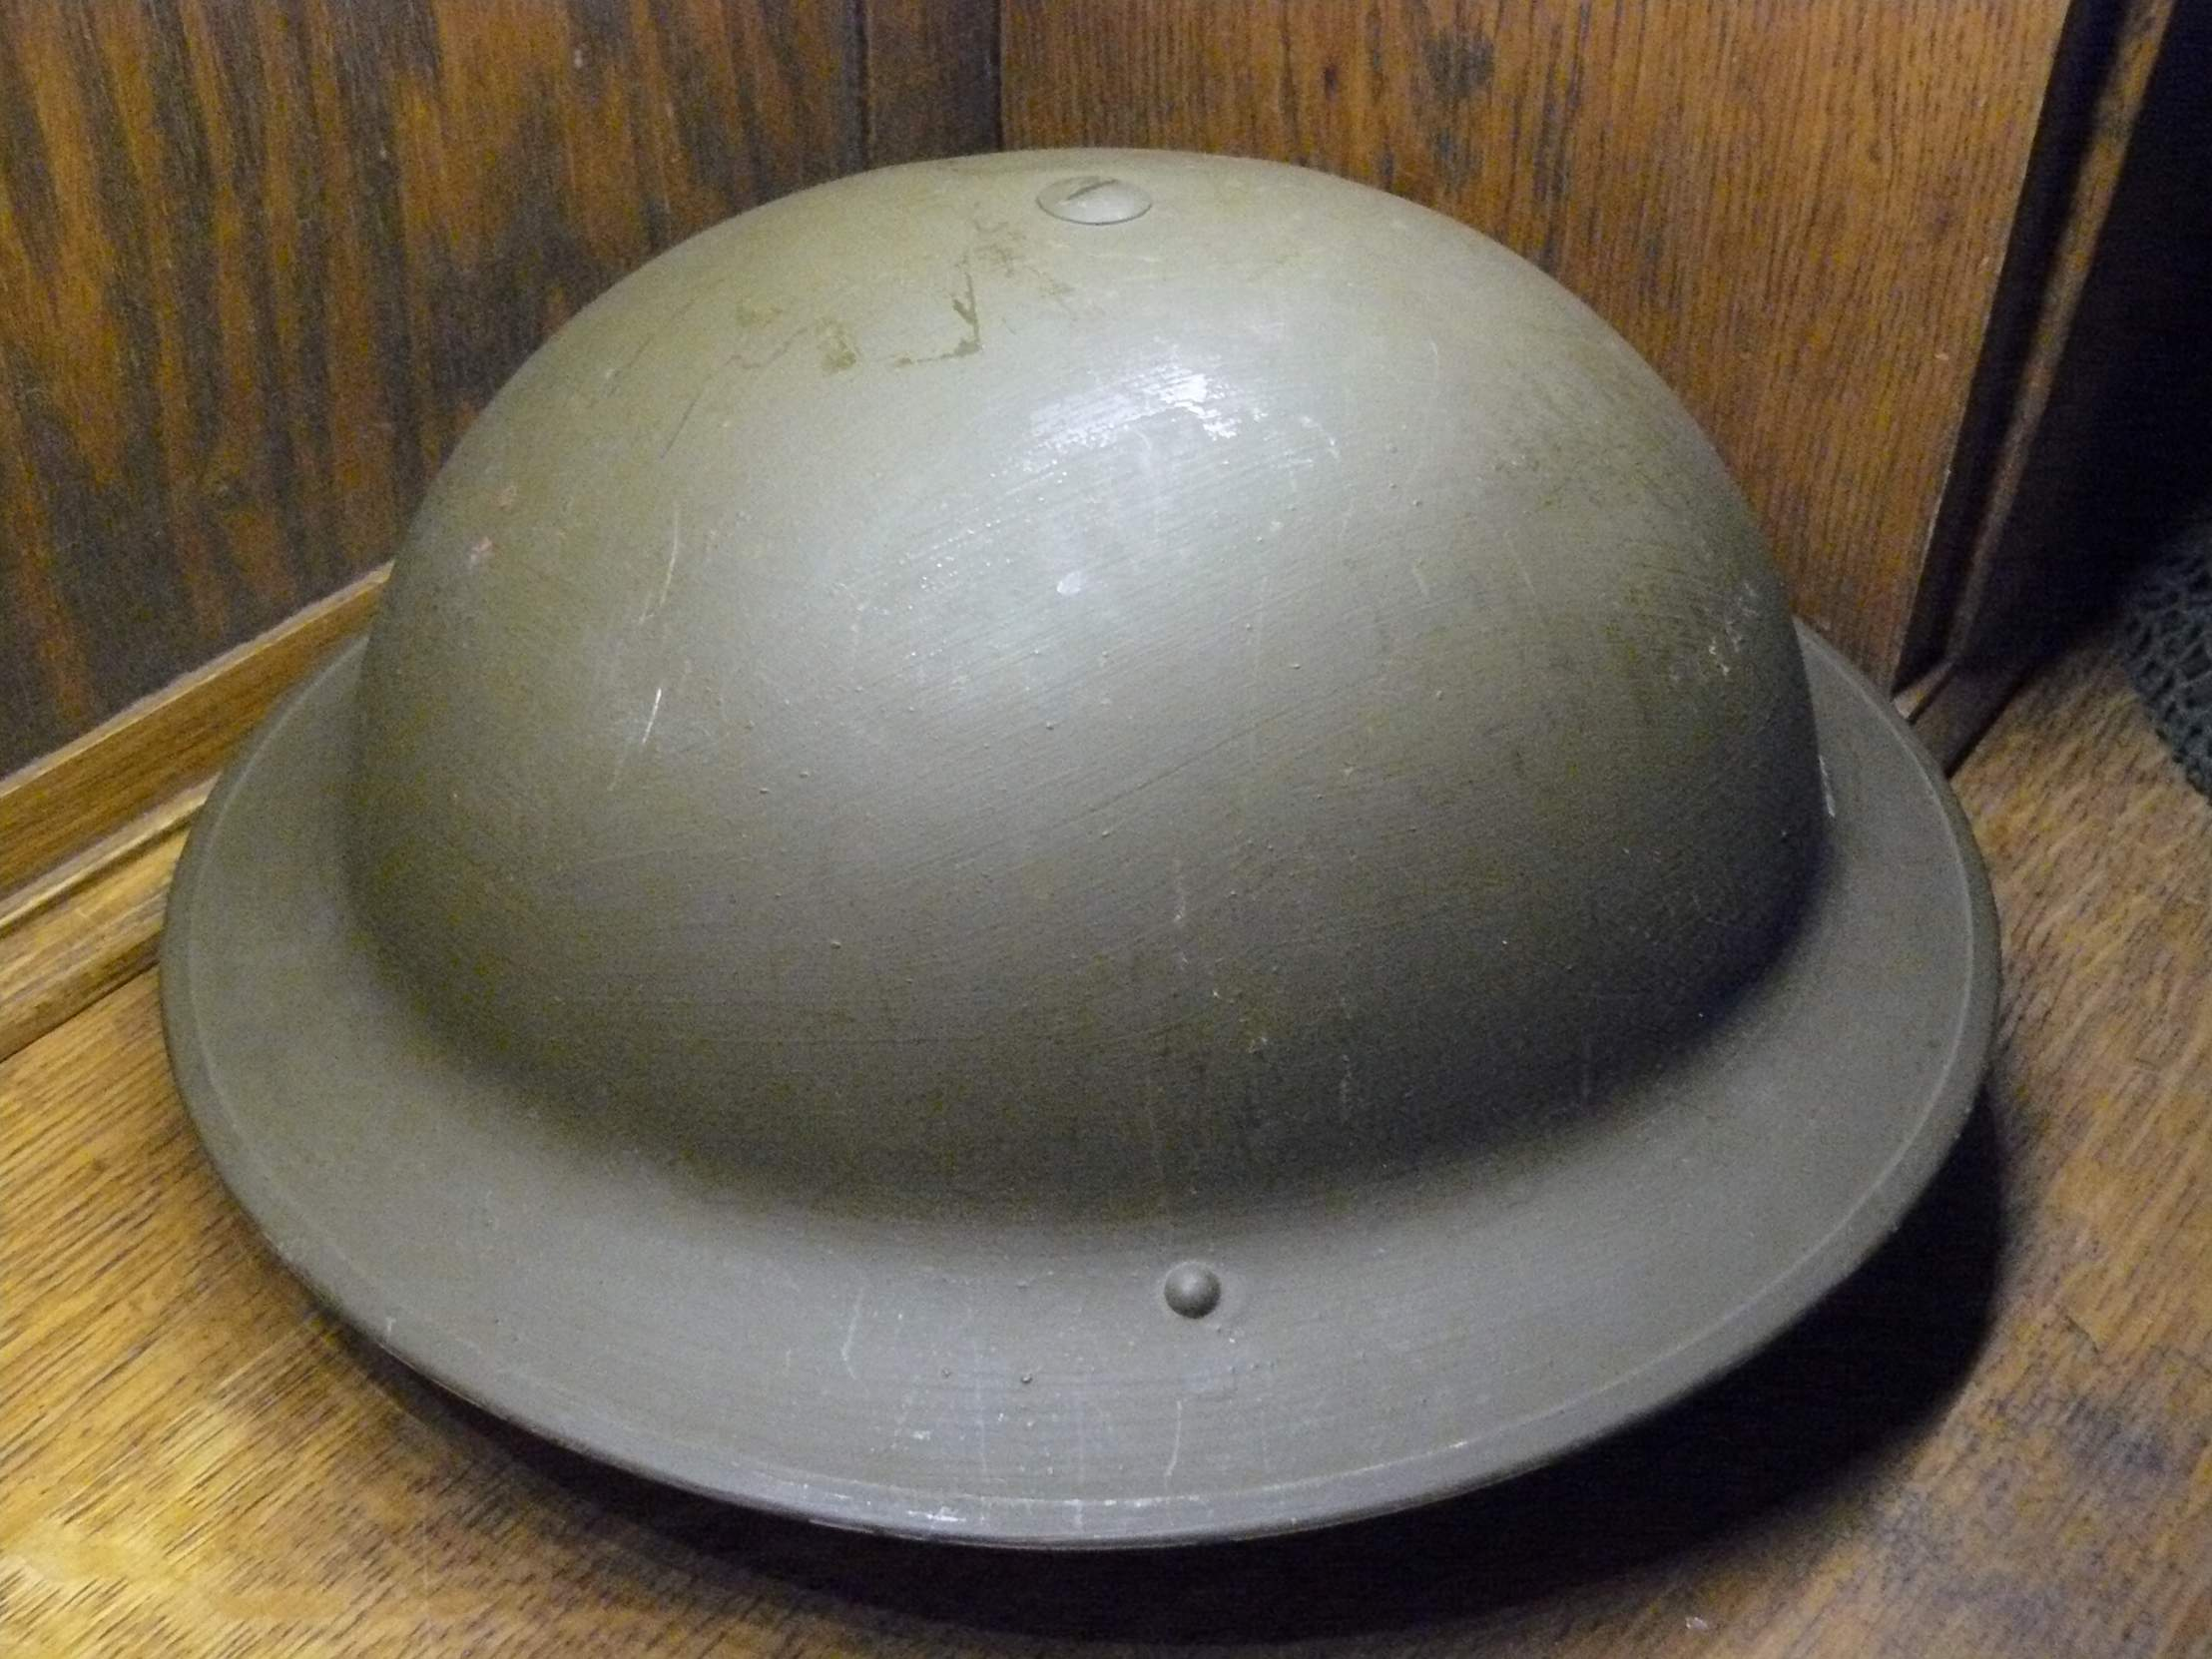 Brodie Helmets Marked 1942 and 1943 - Value?